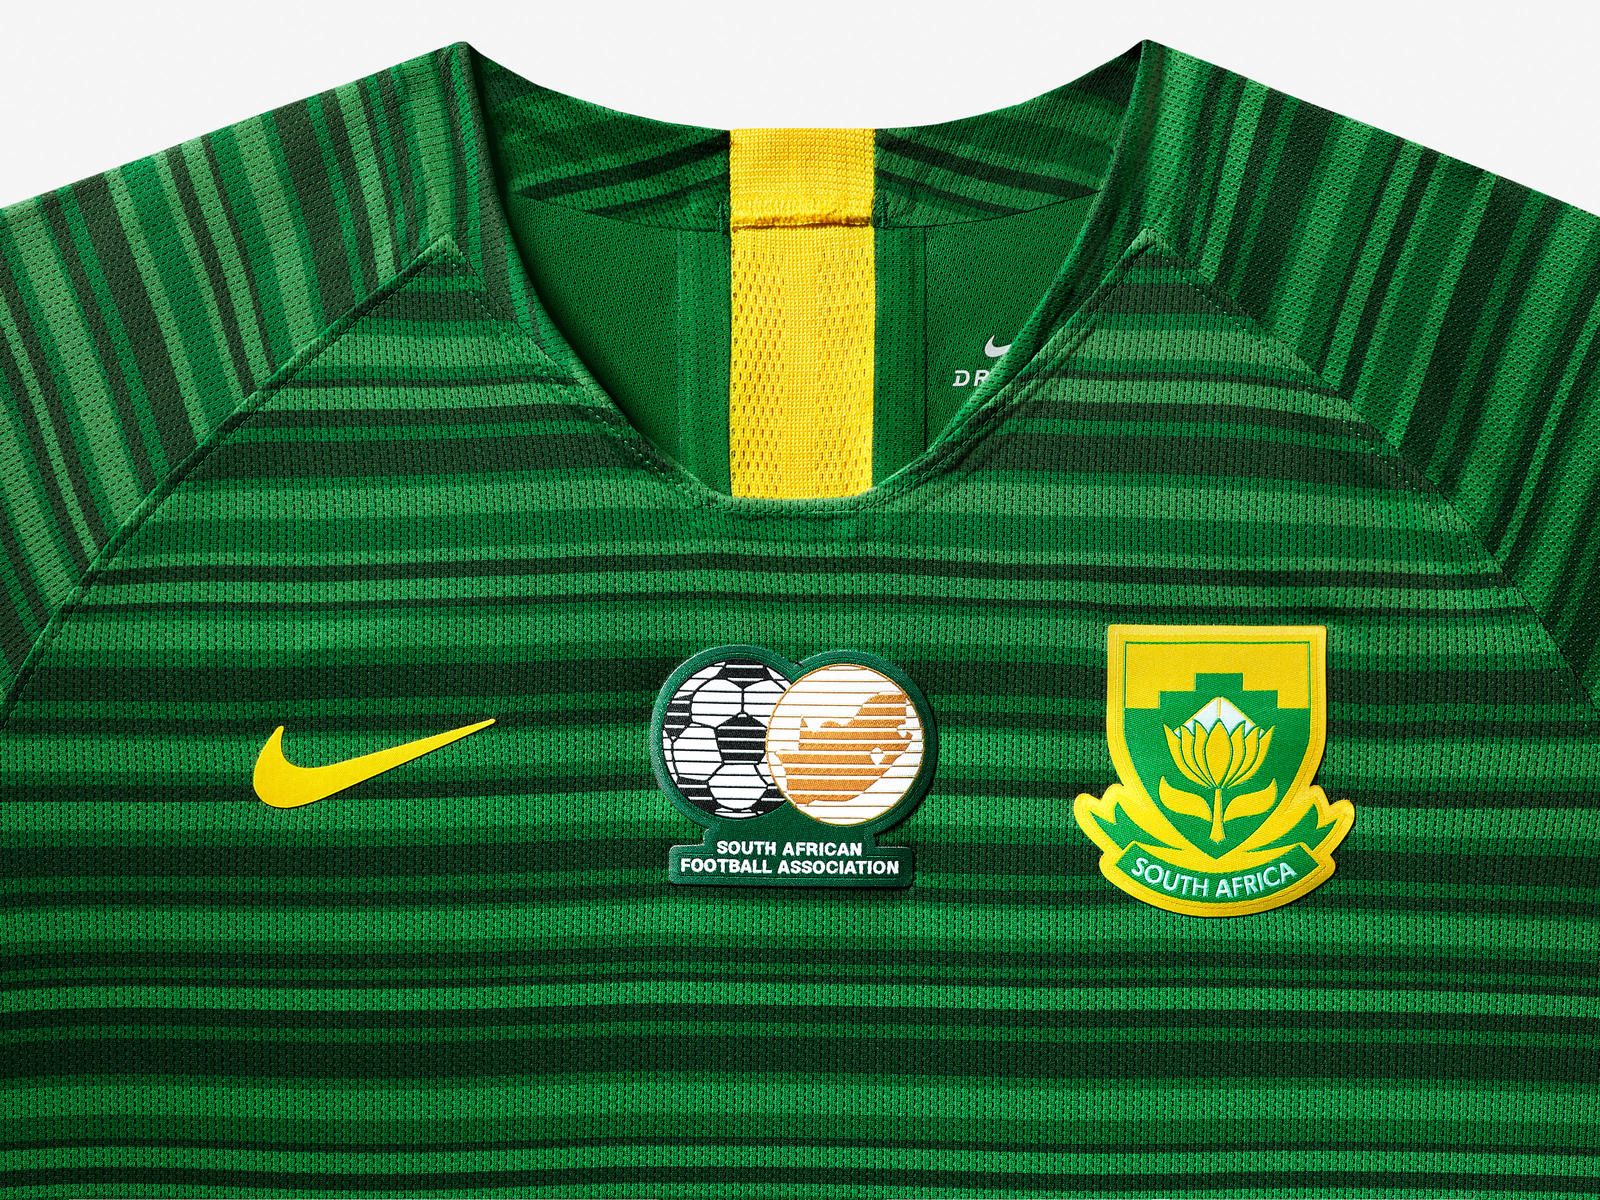 south-africa-national-team-kit-2019-laydown013_85900.jpg